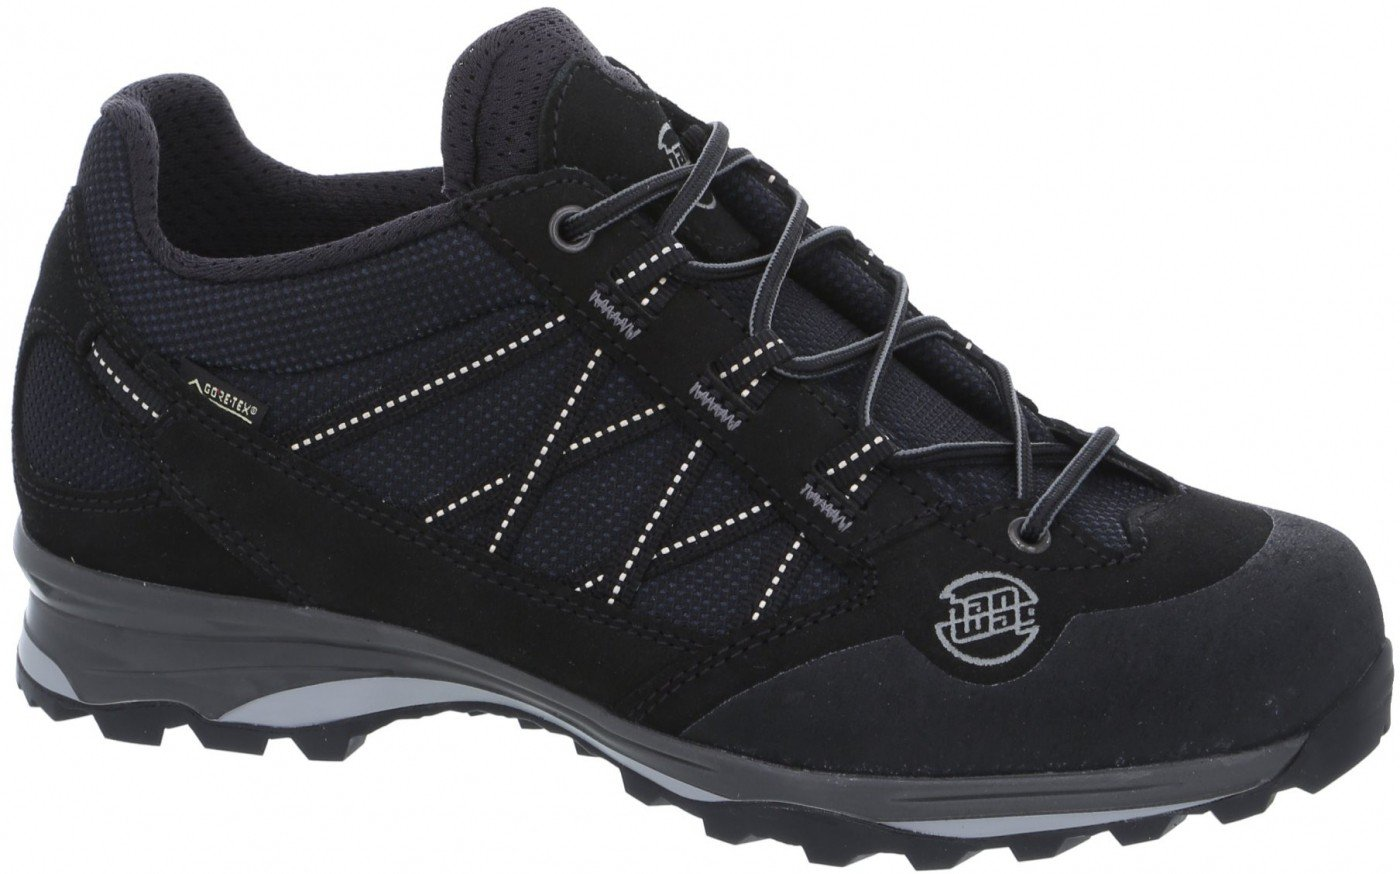 Hanwag Belorado II Low Bunion Lady GTX - schwarz schwarz